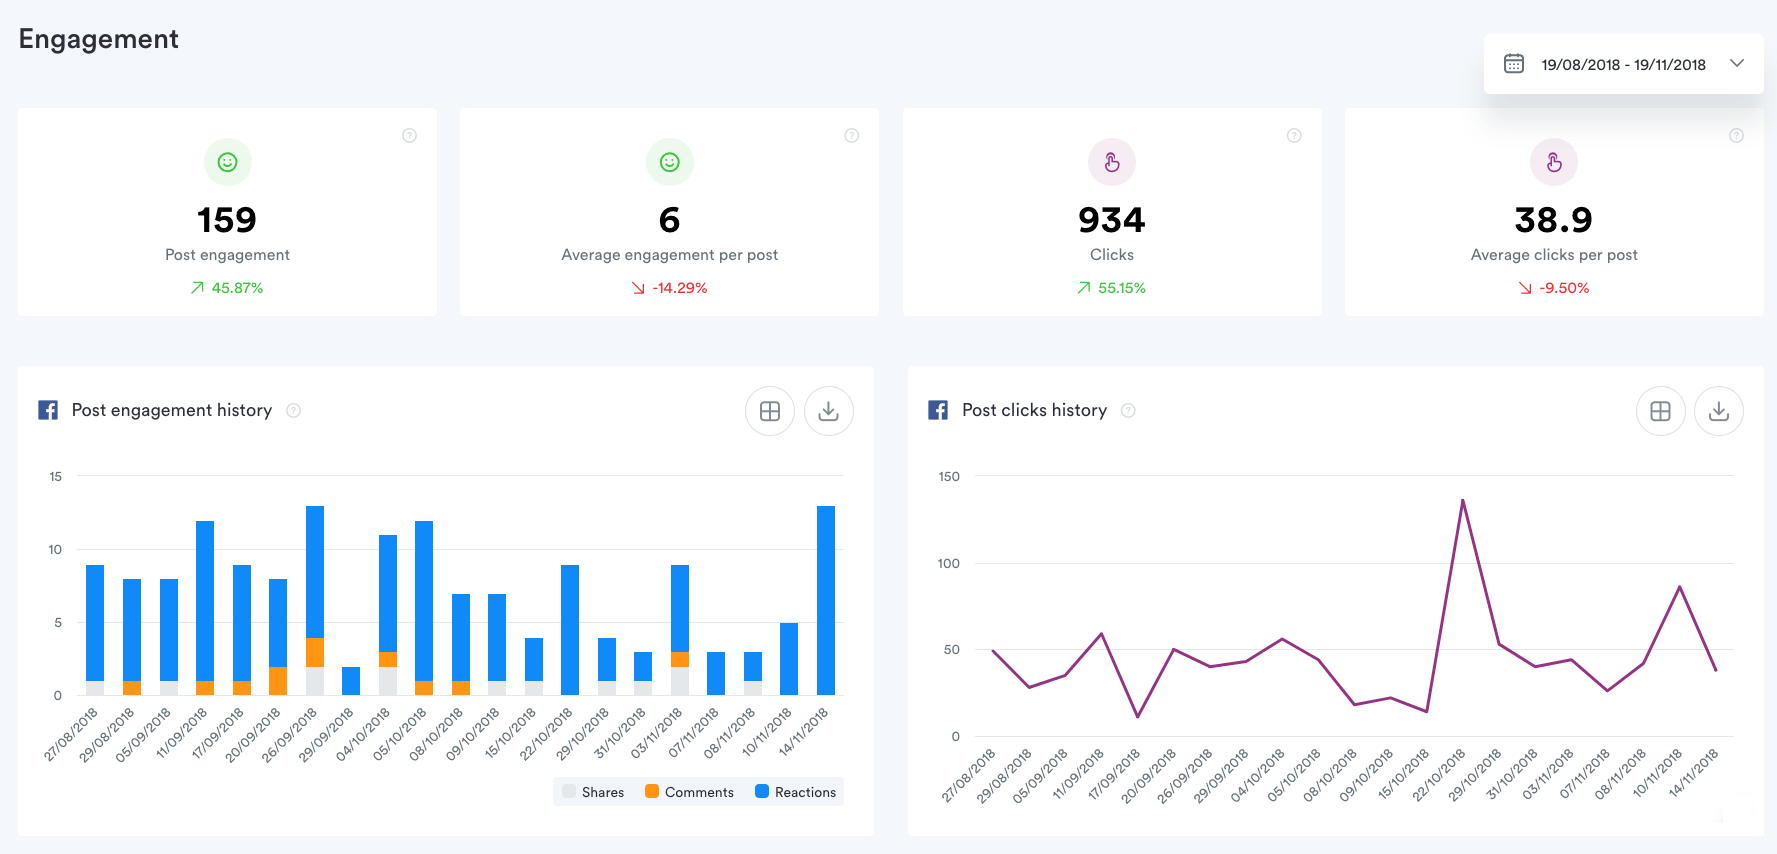 Iconosquare Facebook analytics dashboards make it easier to track your KPIs